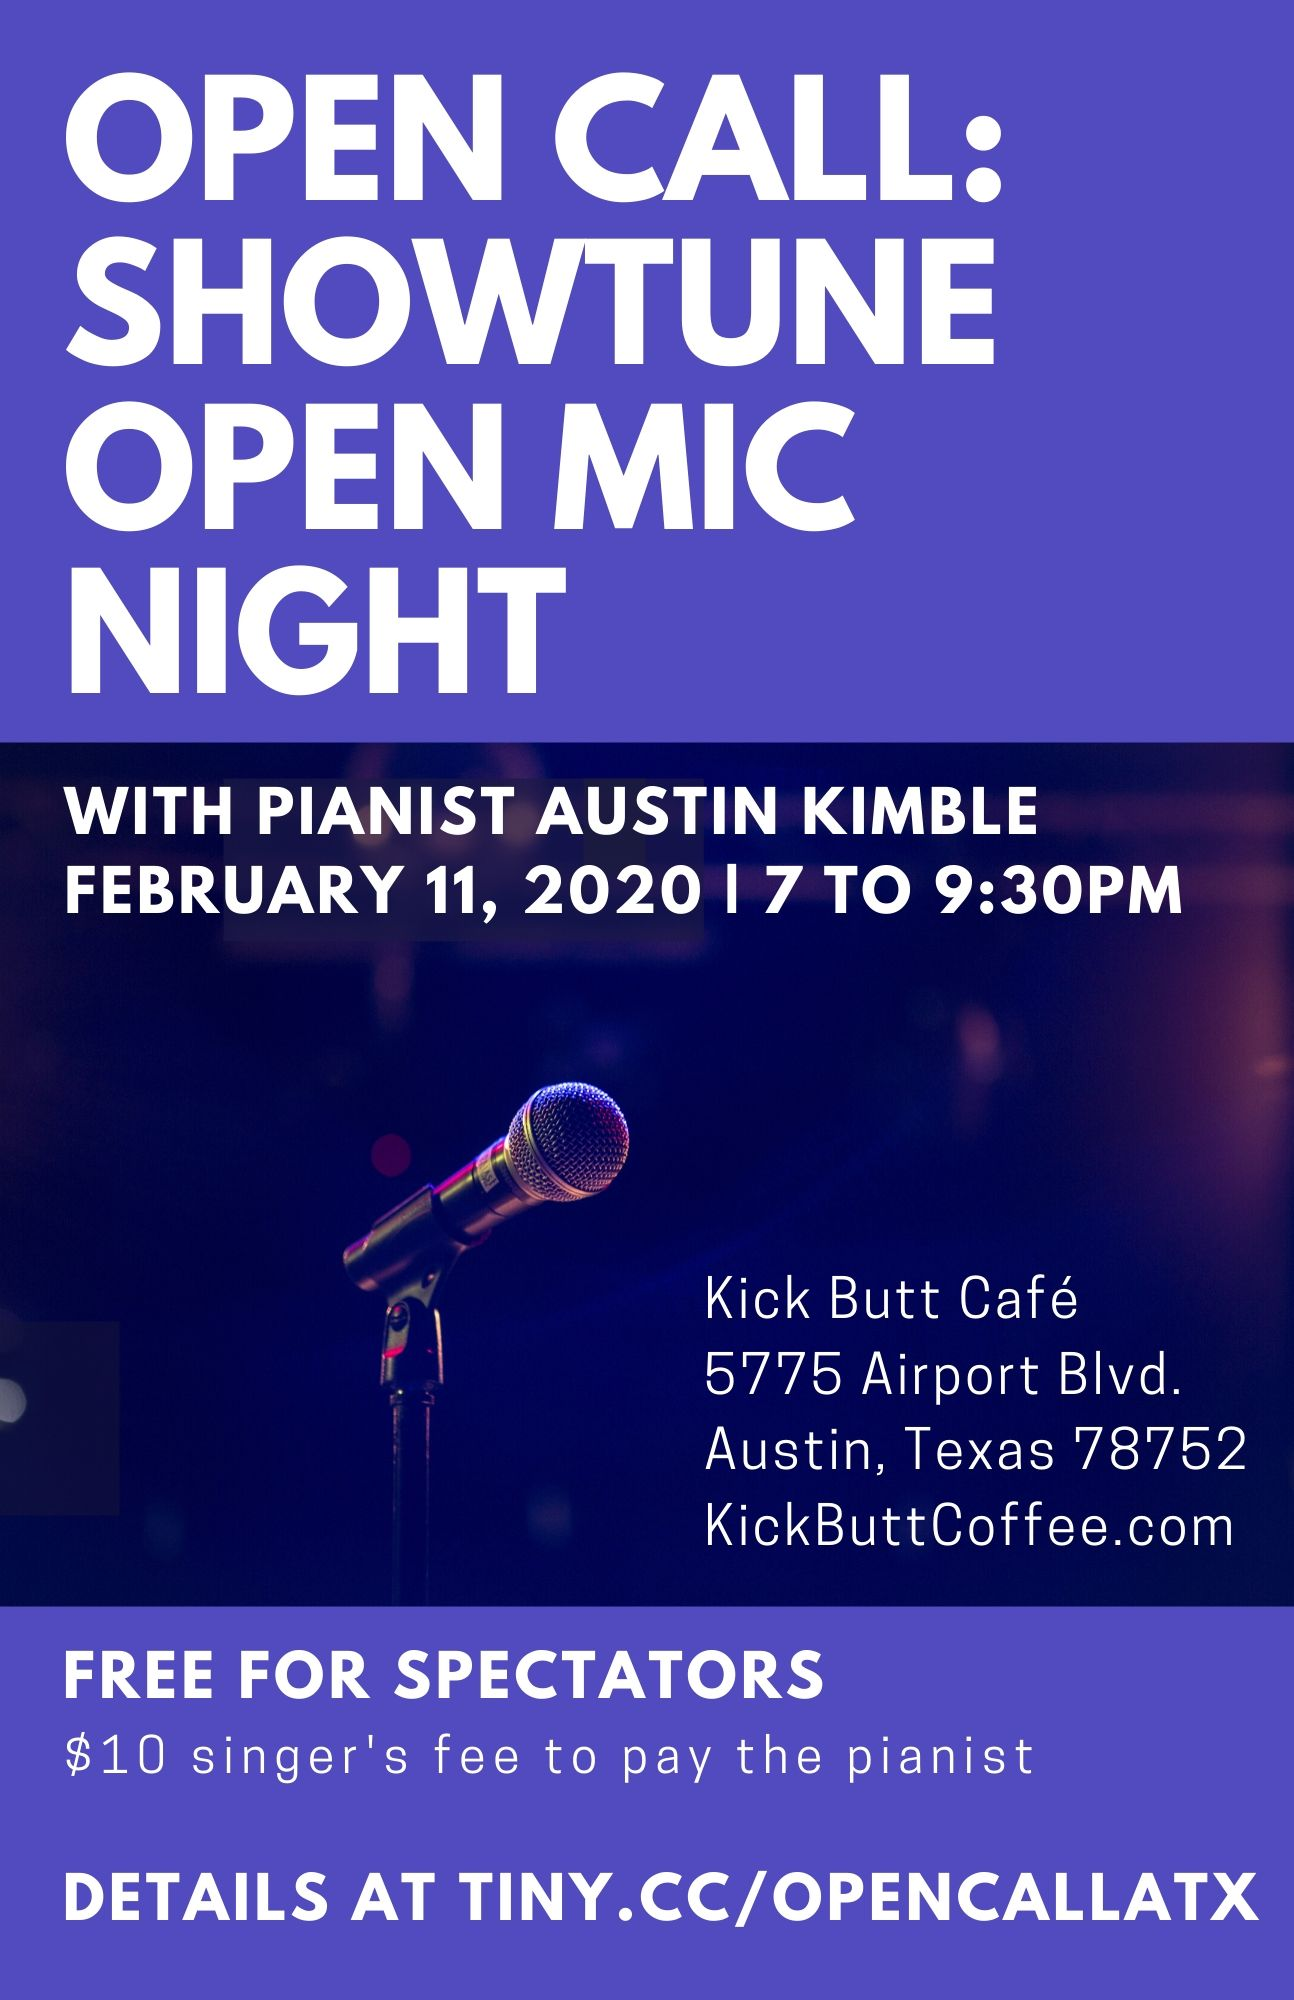 Open Call - Showtune Open Mic Night by Susan Johnston Taylor